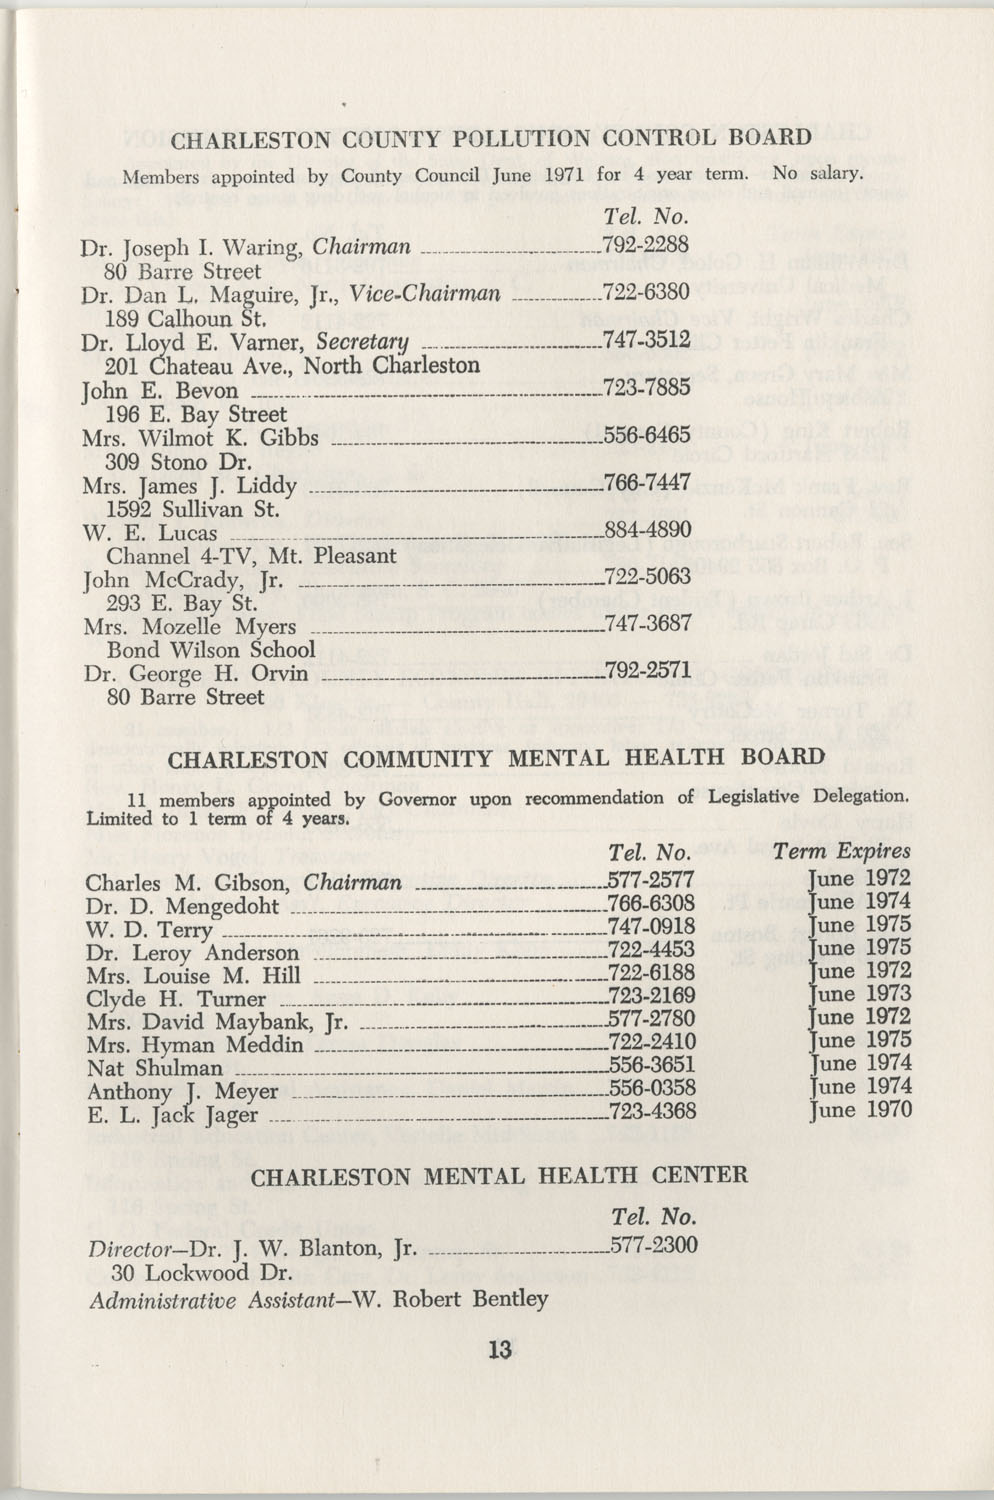 Directory of Public Officials, 1972-1973, Page 13